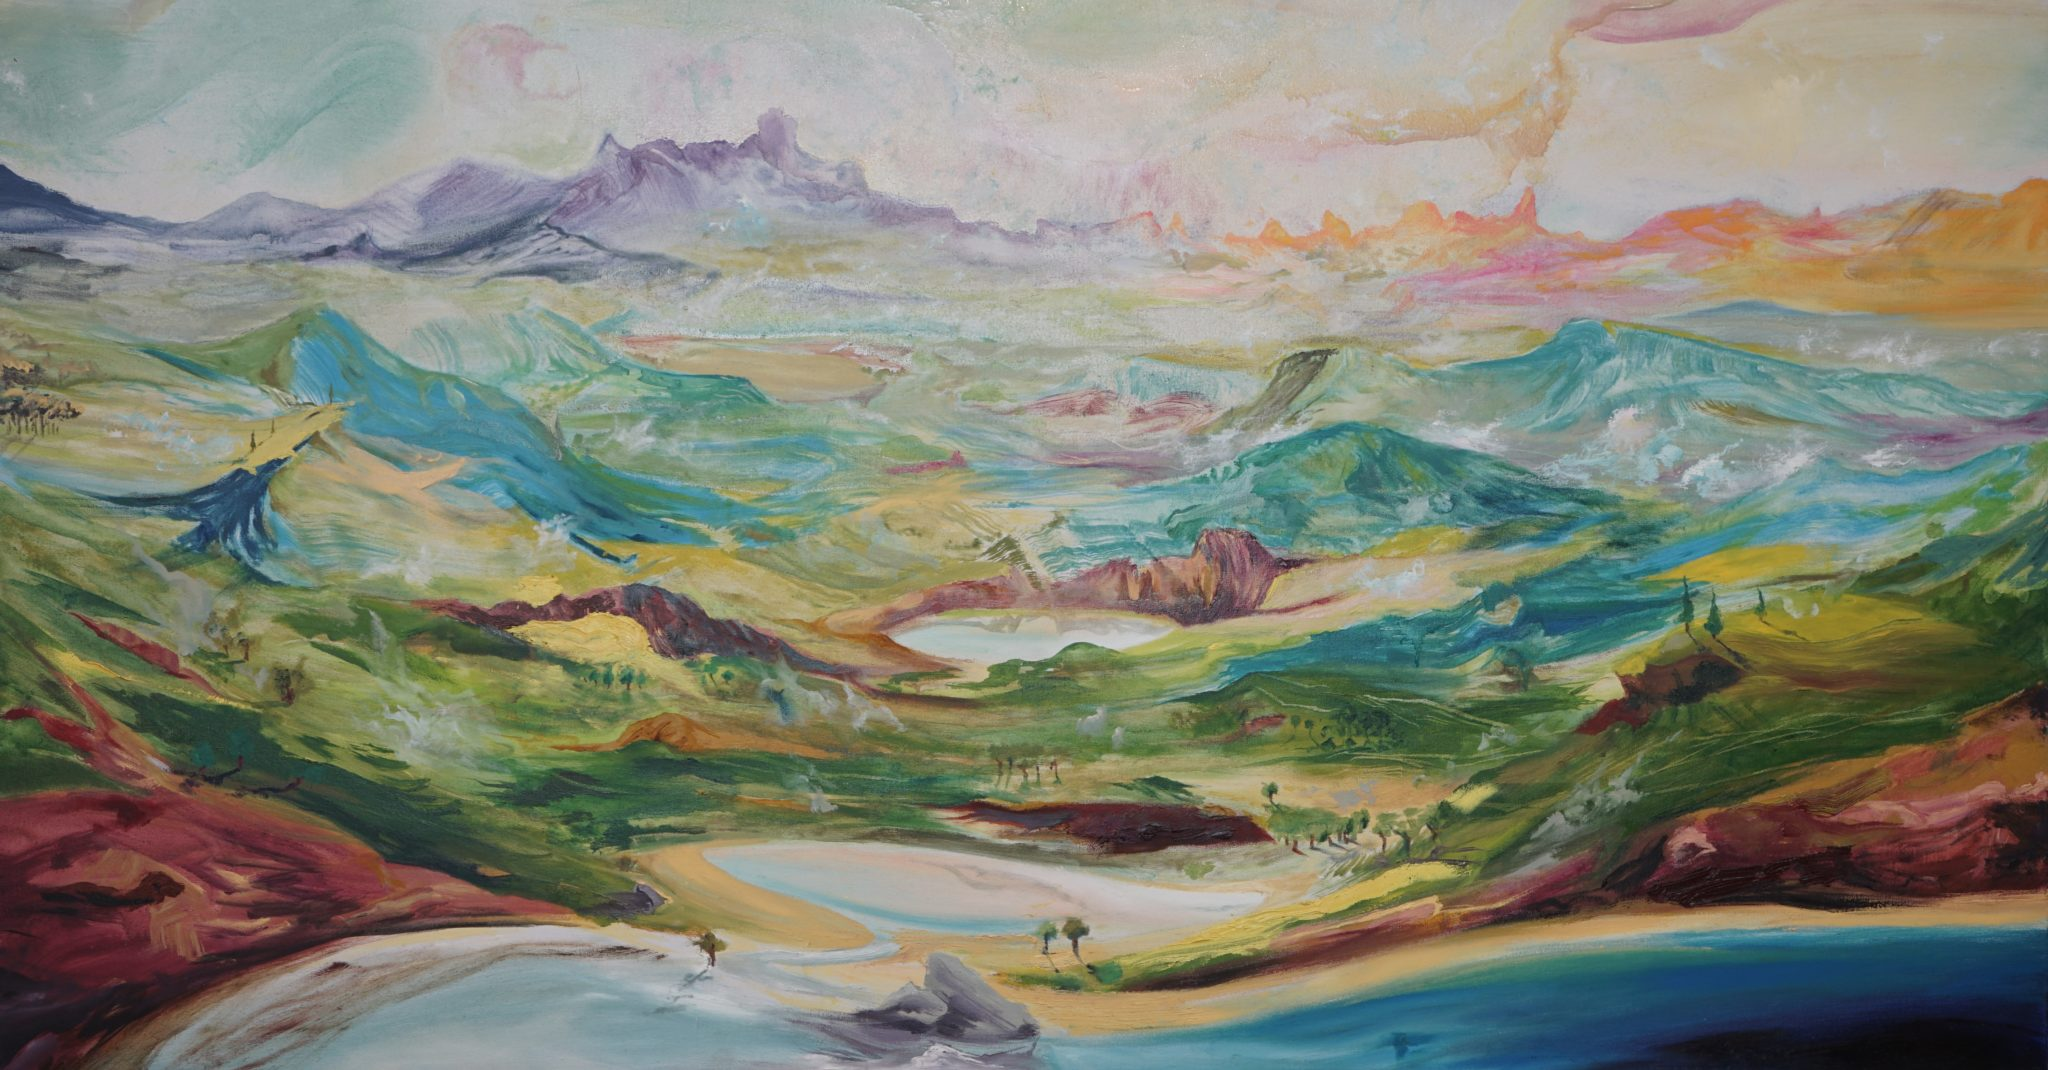 The painting Aconte's Landscape is elaborated by Jose Lavin, with the oil on canvas technique.